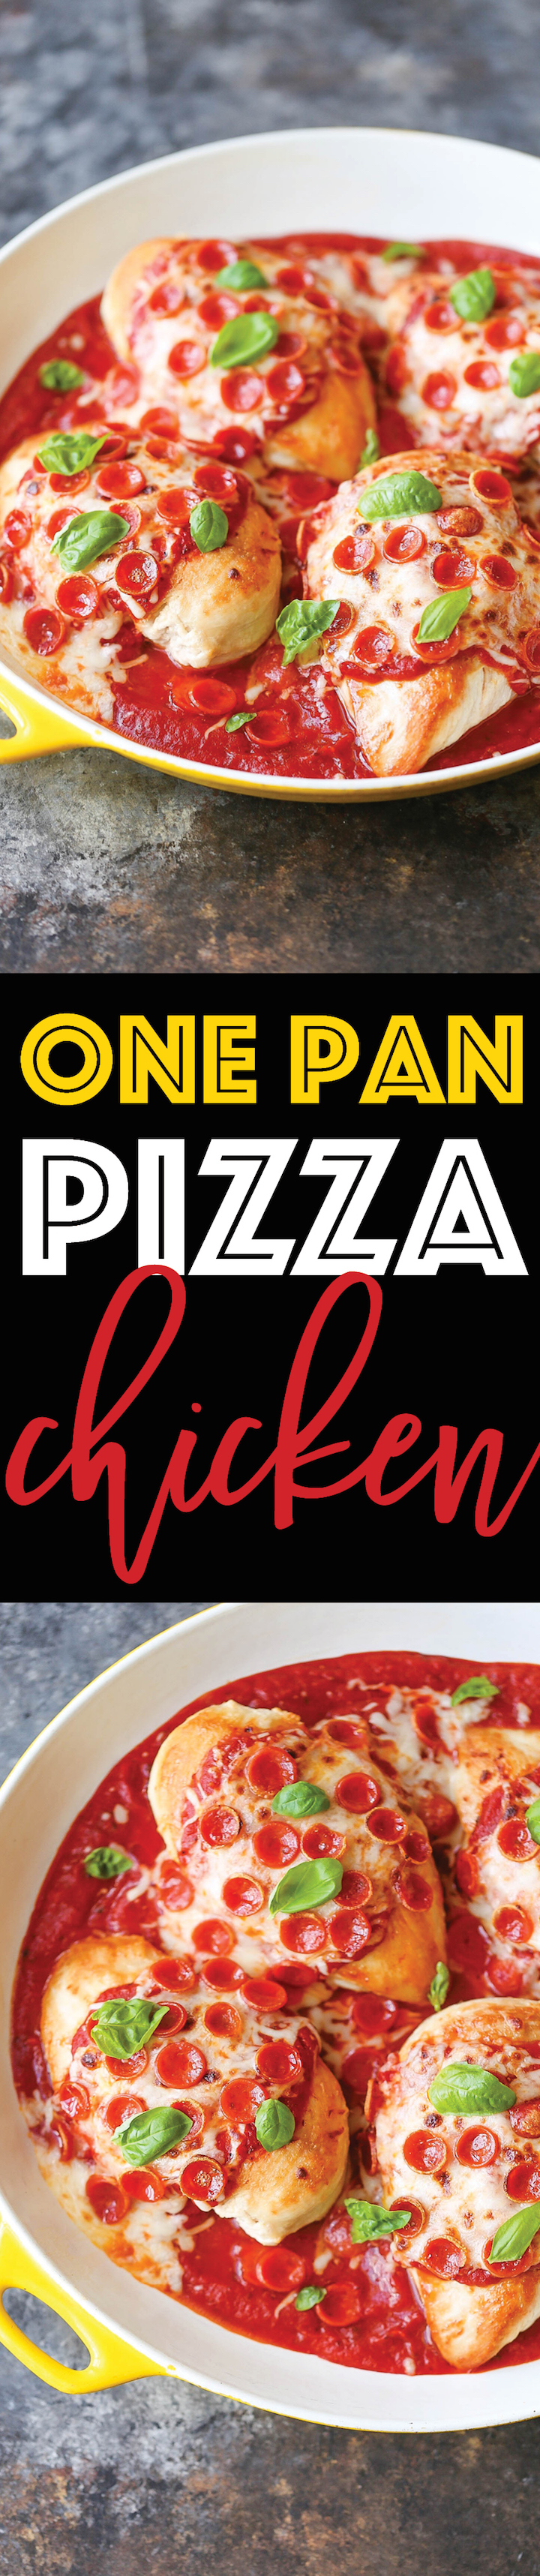 One Pan Pizza Chicken - Win win chicken dinner! A ONE PAN meal. And it's a LOW CARB cheesy goodness meal for the whole family to enjoy on a busy weeknight!